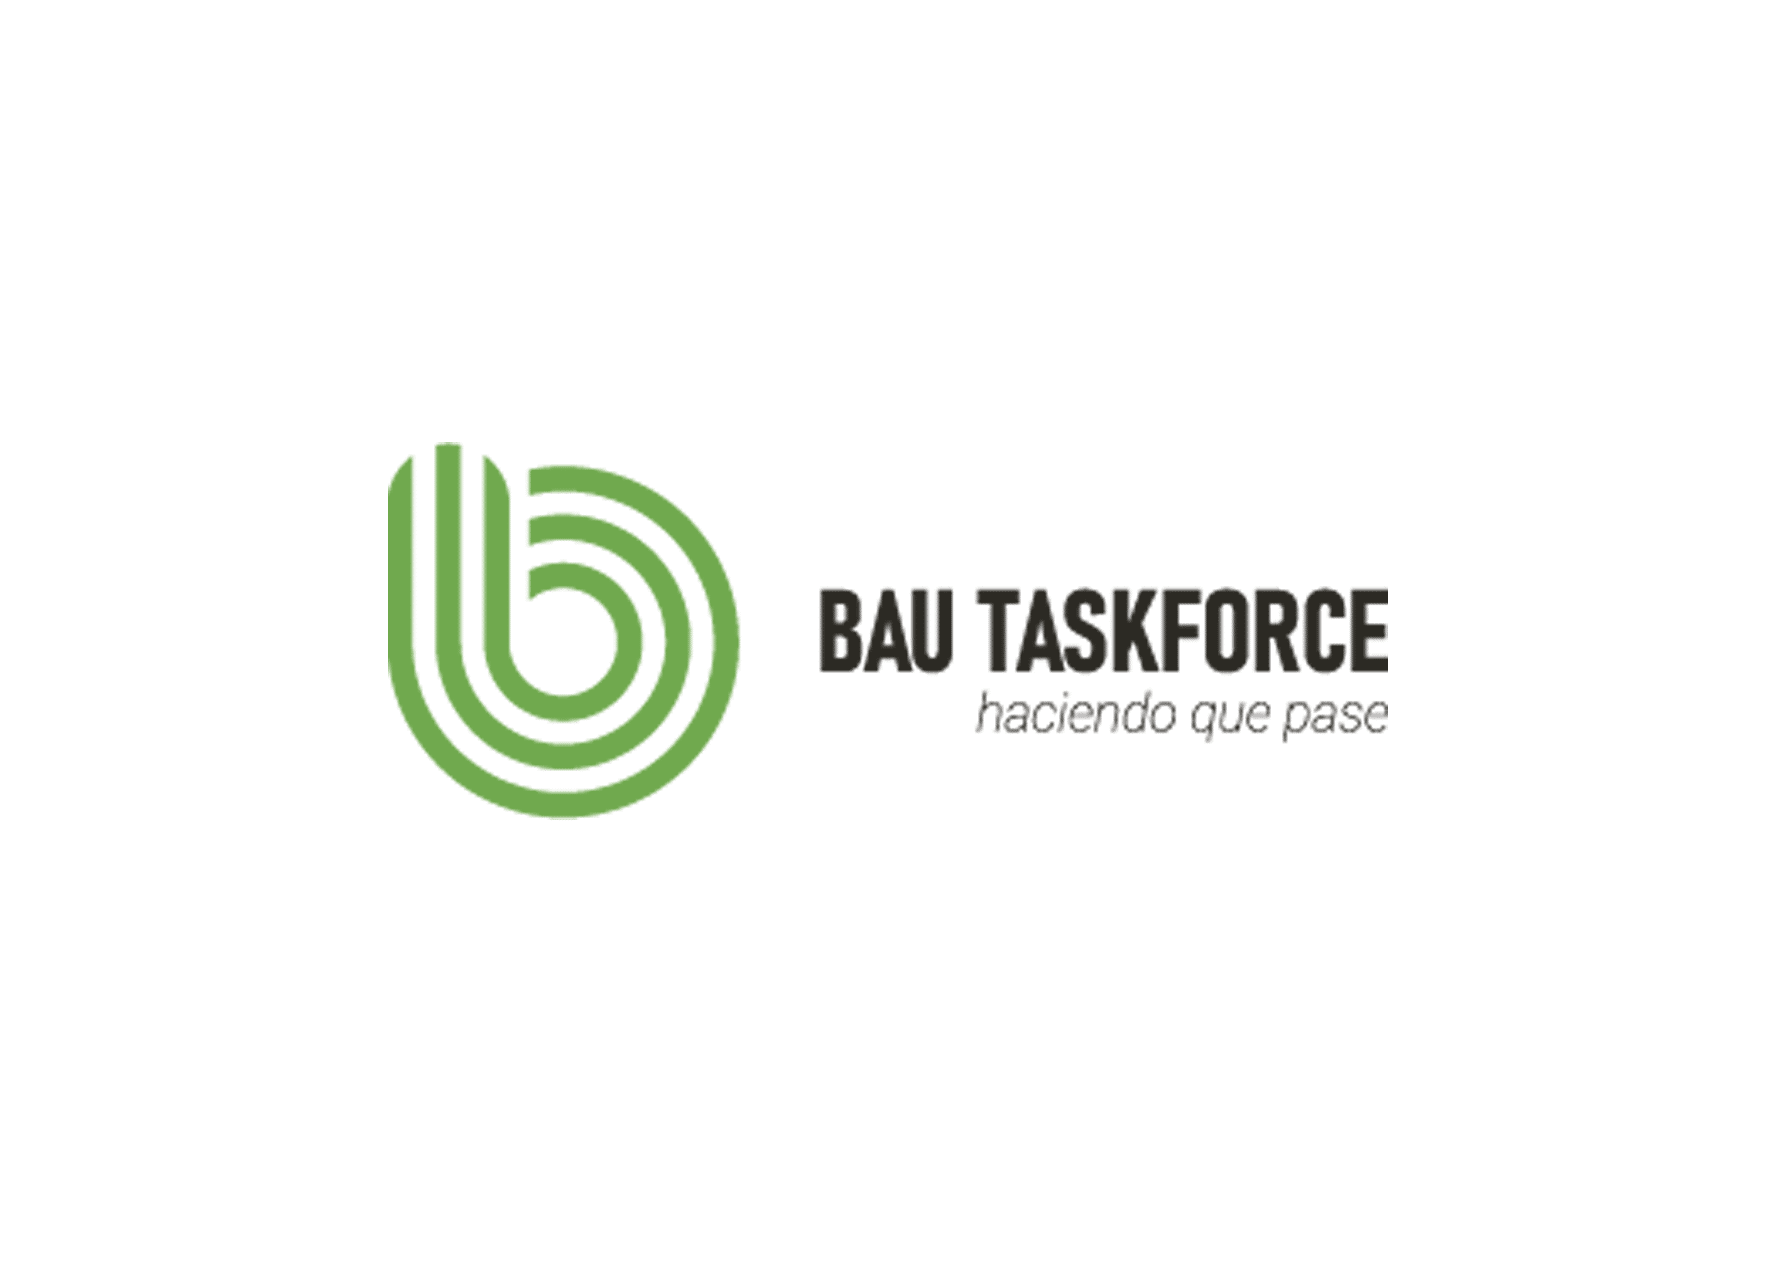 Logo web Bau TaskForce